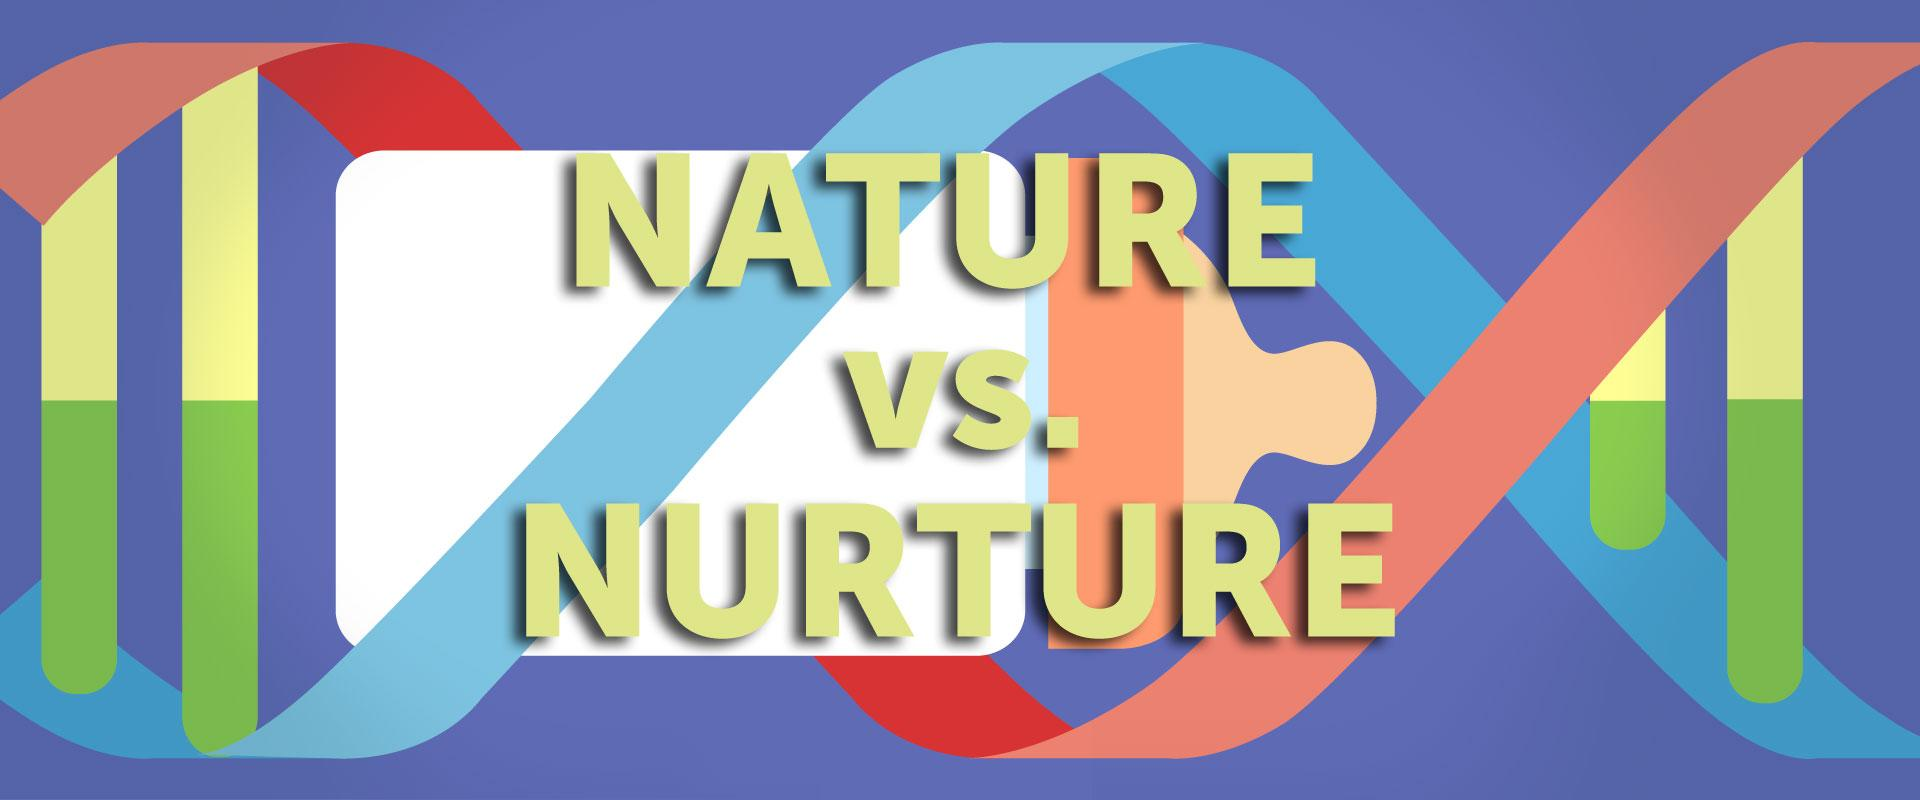 humanities nature vs nurture Evelyn fox keller, professor emerita in mit's program in science, technology, and society, is a leading historian of biology whose new book, the mirage of a space between nature and nurture, published this fall by duke university press, makes a concise critique of nature-nurture debates among other things, keller asserts, it is mistaken to.